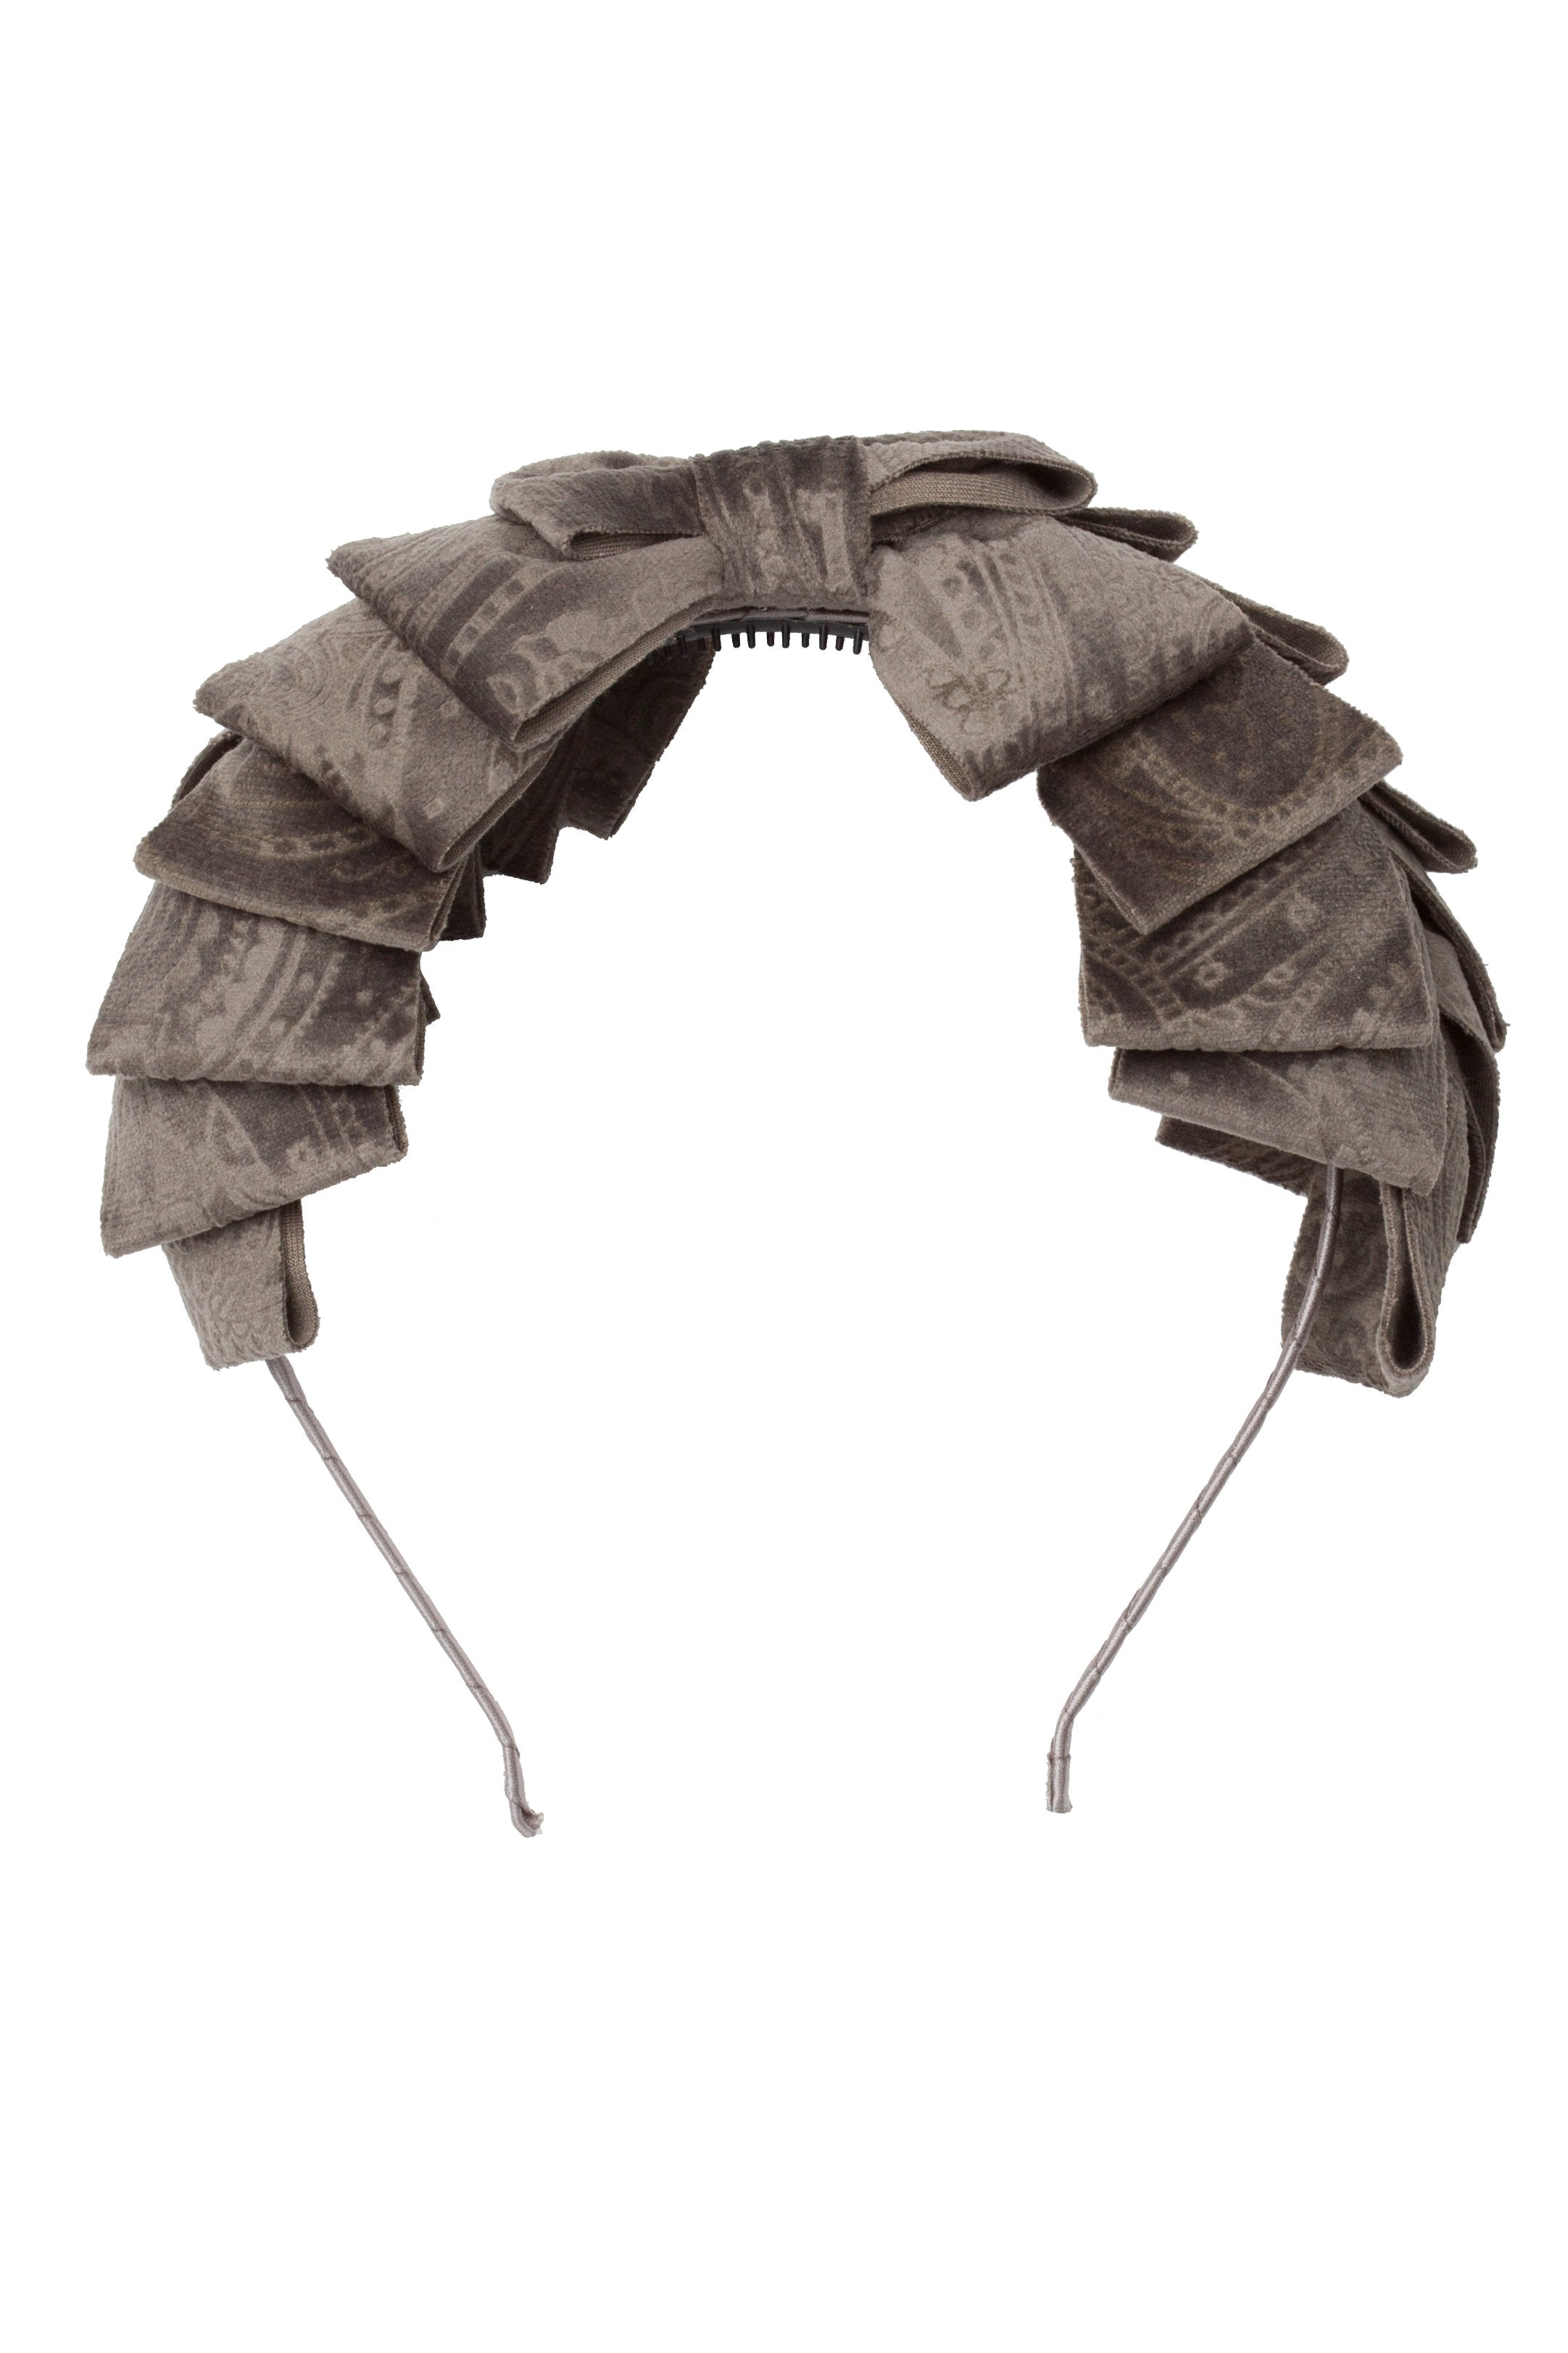 Pleated Ribbon Headband - Smoke Grey Paisley Suede - PROJECT 6, modest fashion